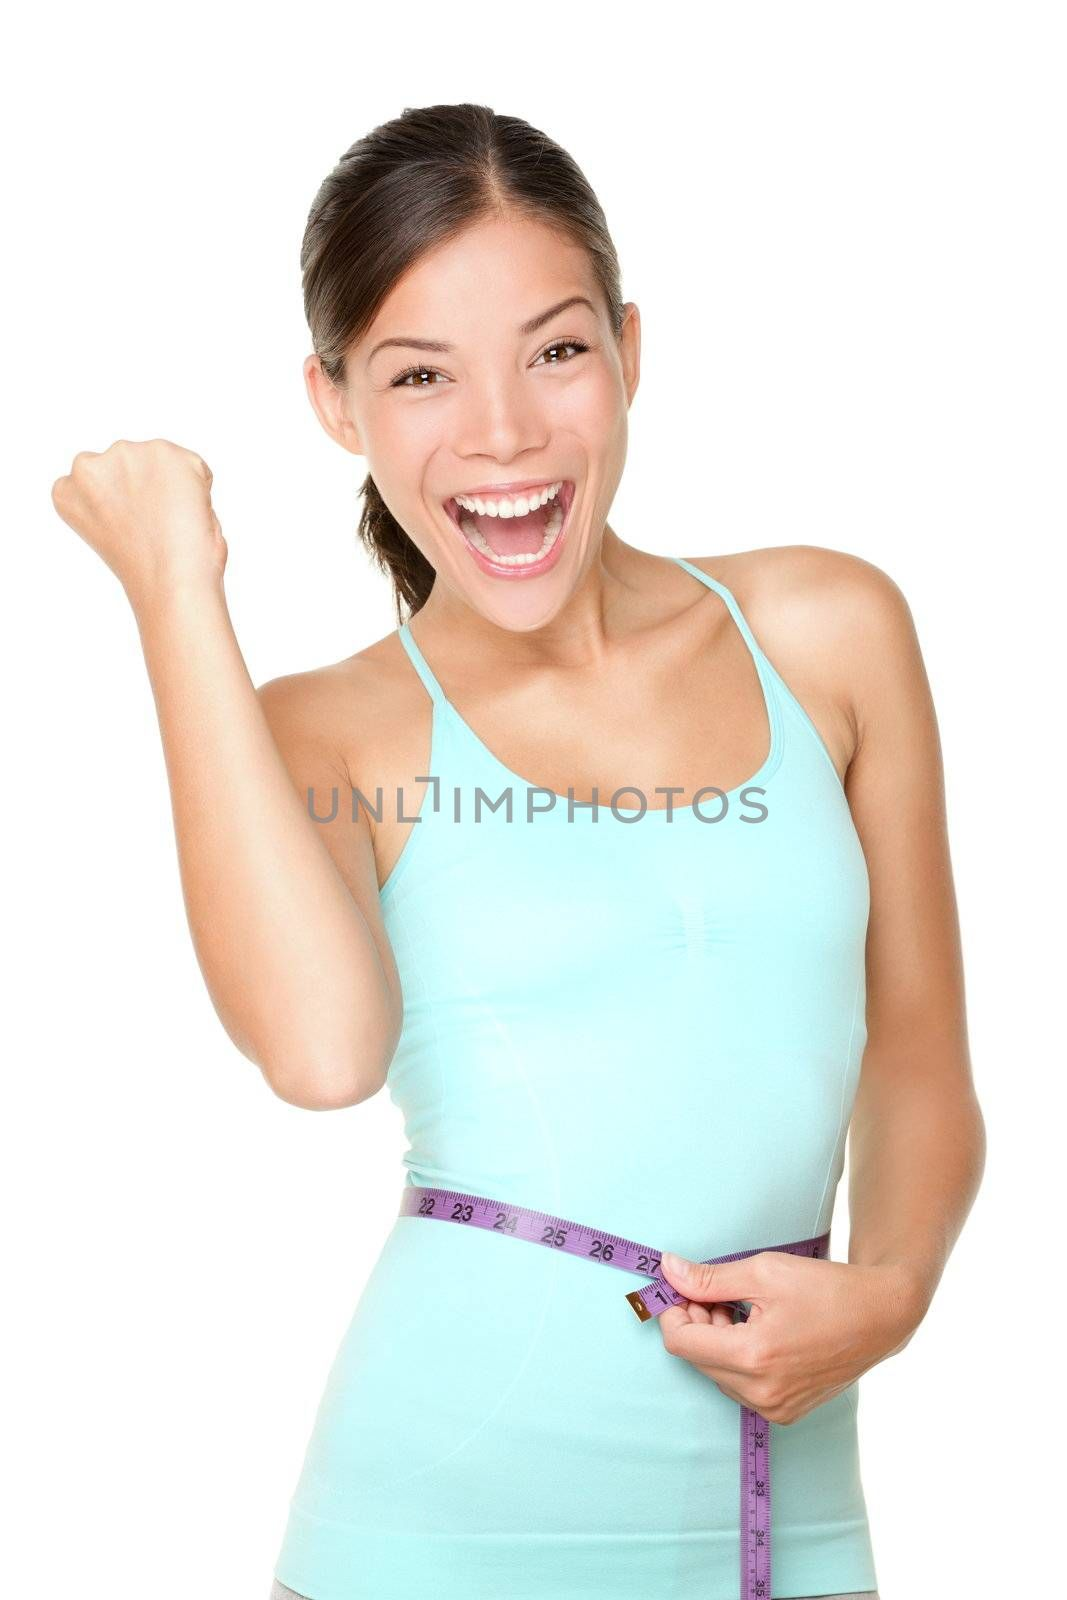 Weight loss concept woman smiling happy excited holding measuring tape around waist. Energetic portrait of sport fitness model isolated on white background. Mixed race Caucasian / Asian woman.